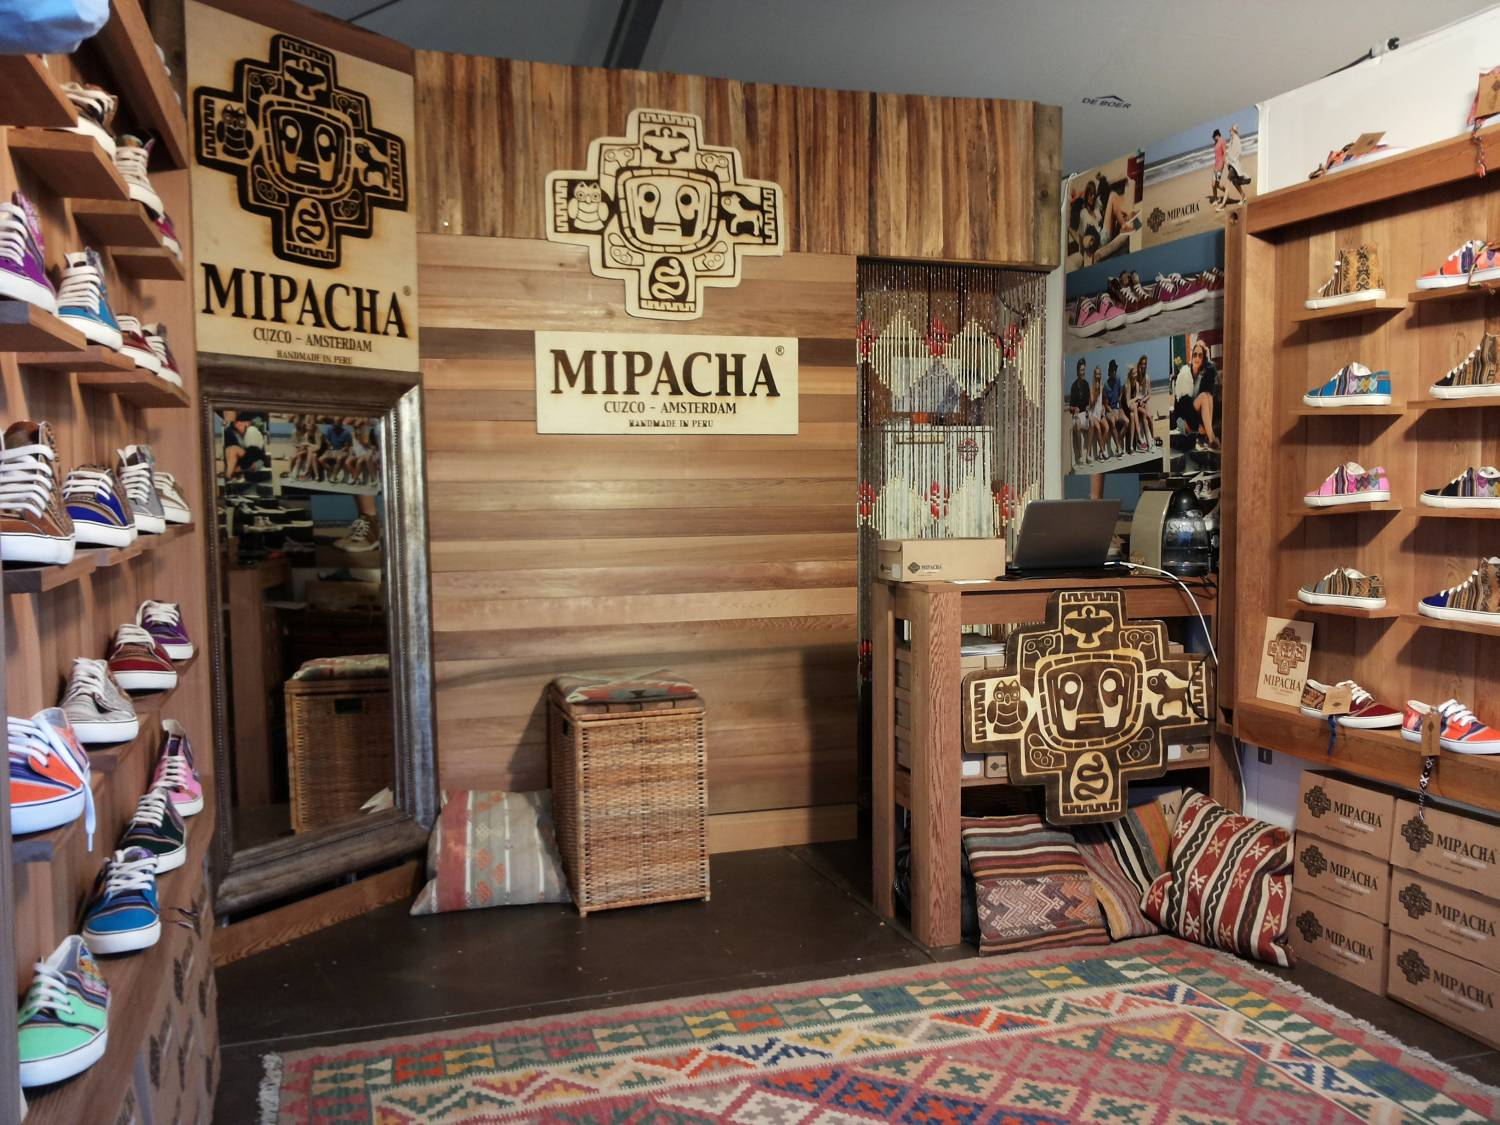 MIPACHA Shop during Hockey World Cup  2014 in The Hague